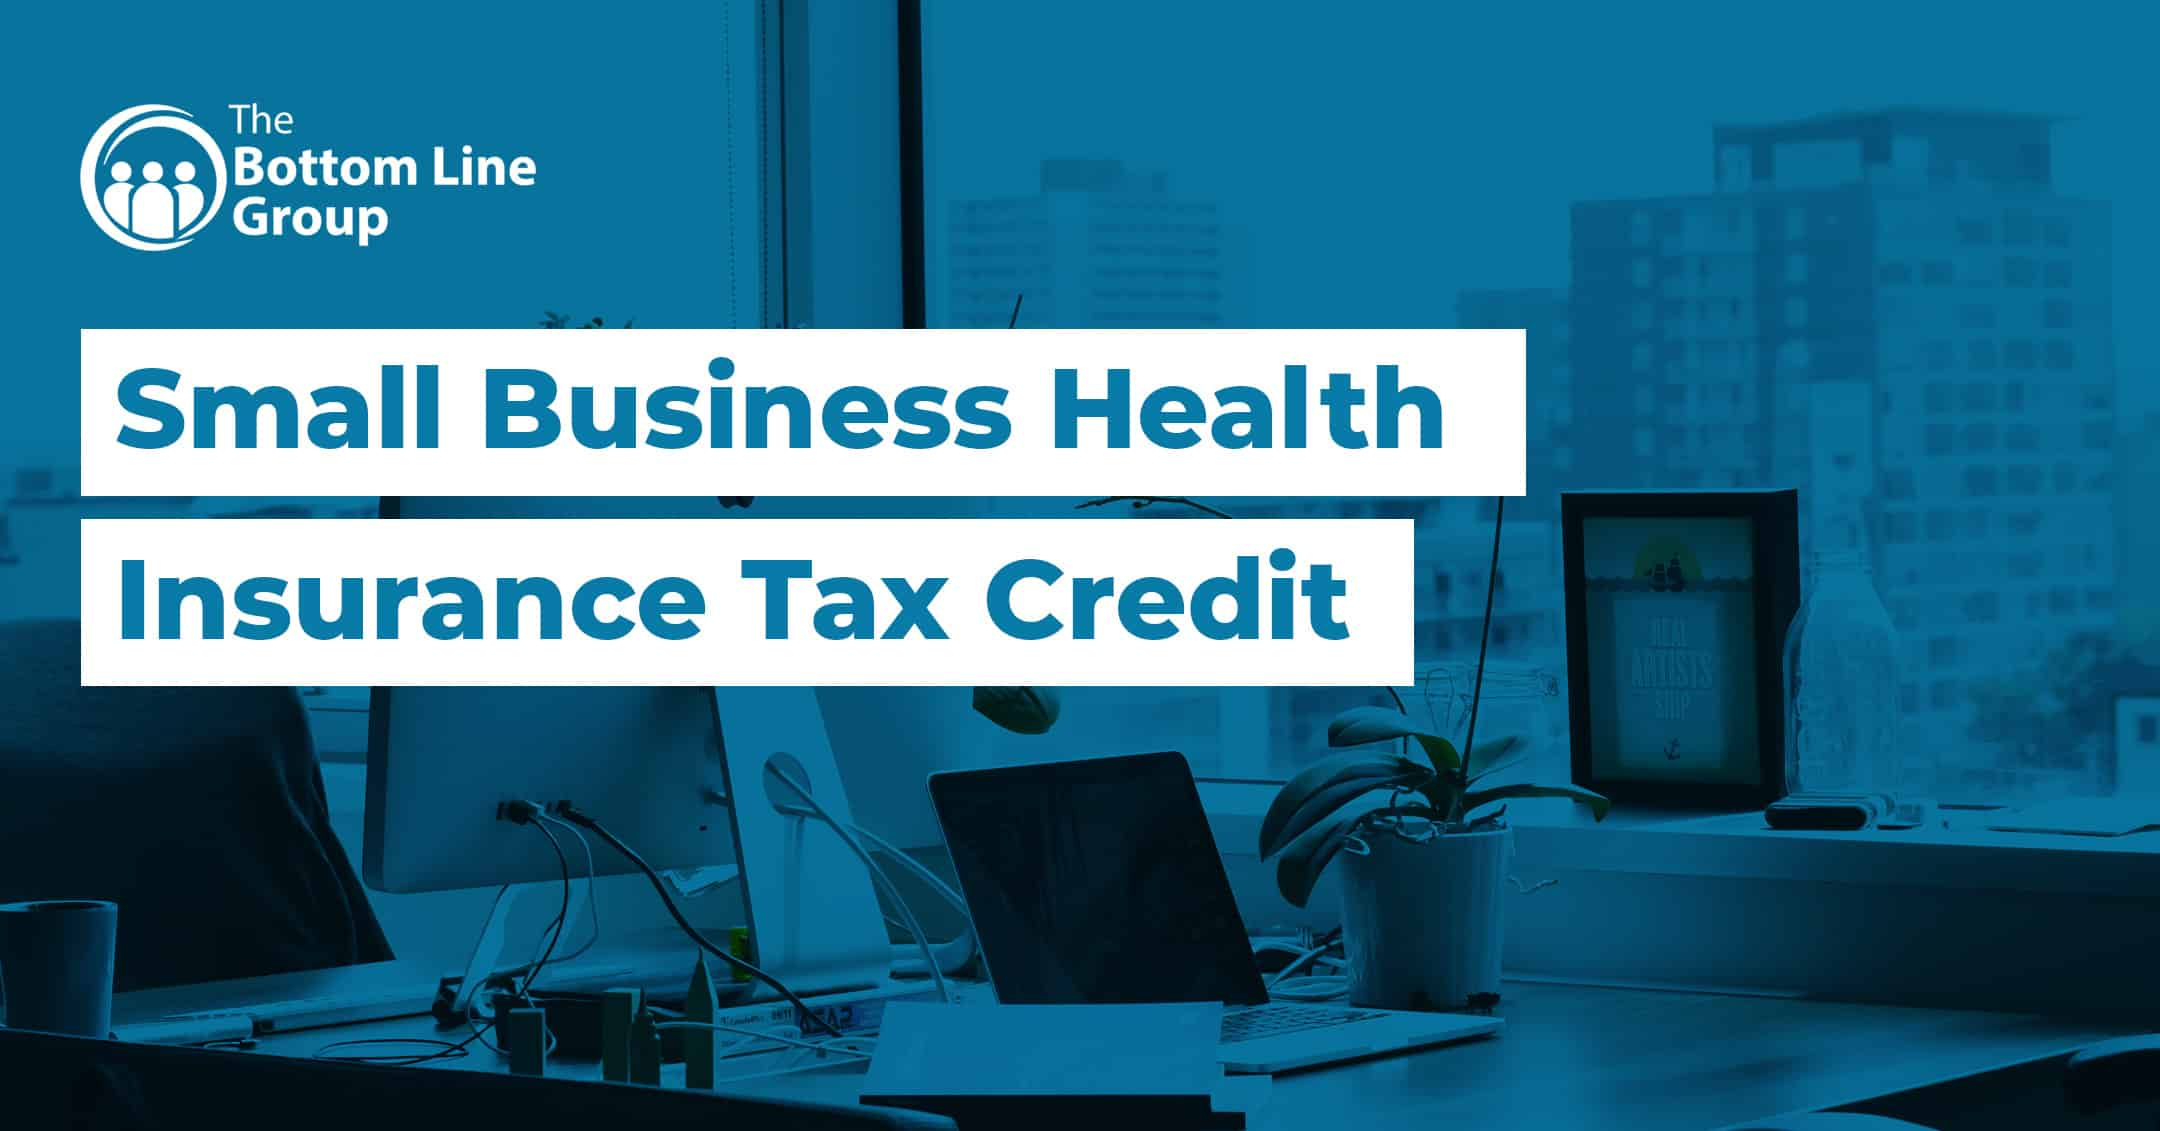 48-(Small-Business-Health-Insurance-Tax-Credit)1